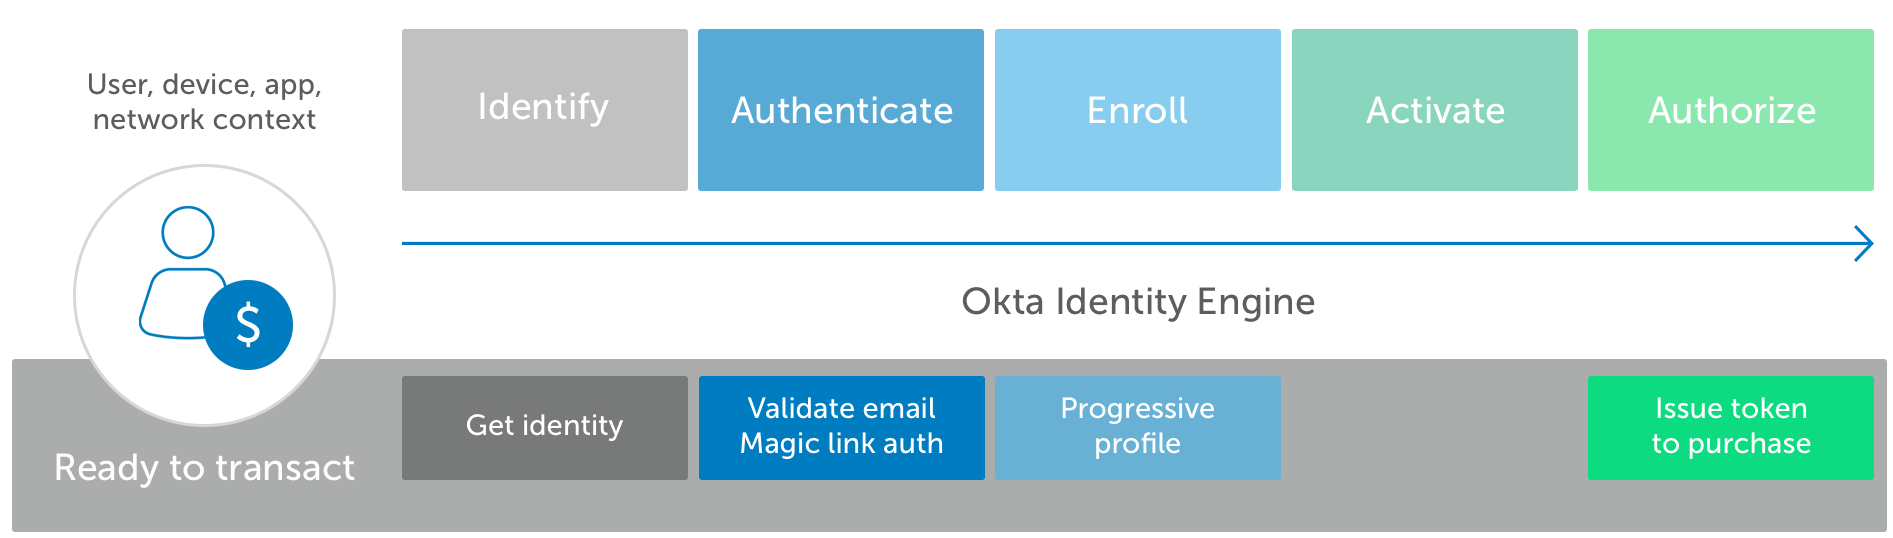 Okta Identity Engine Ready to transact3